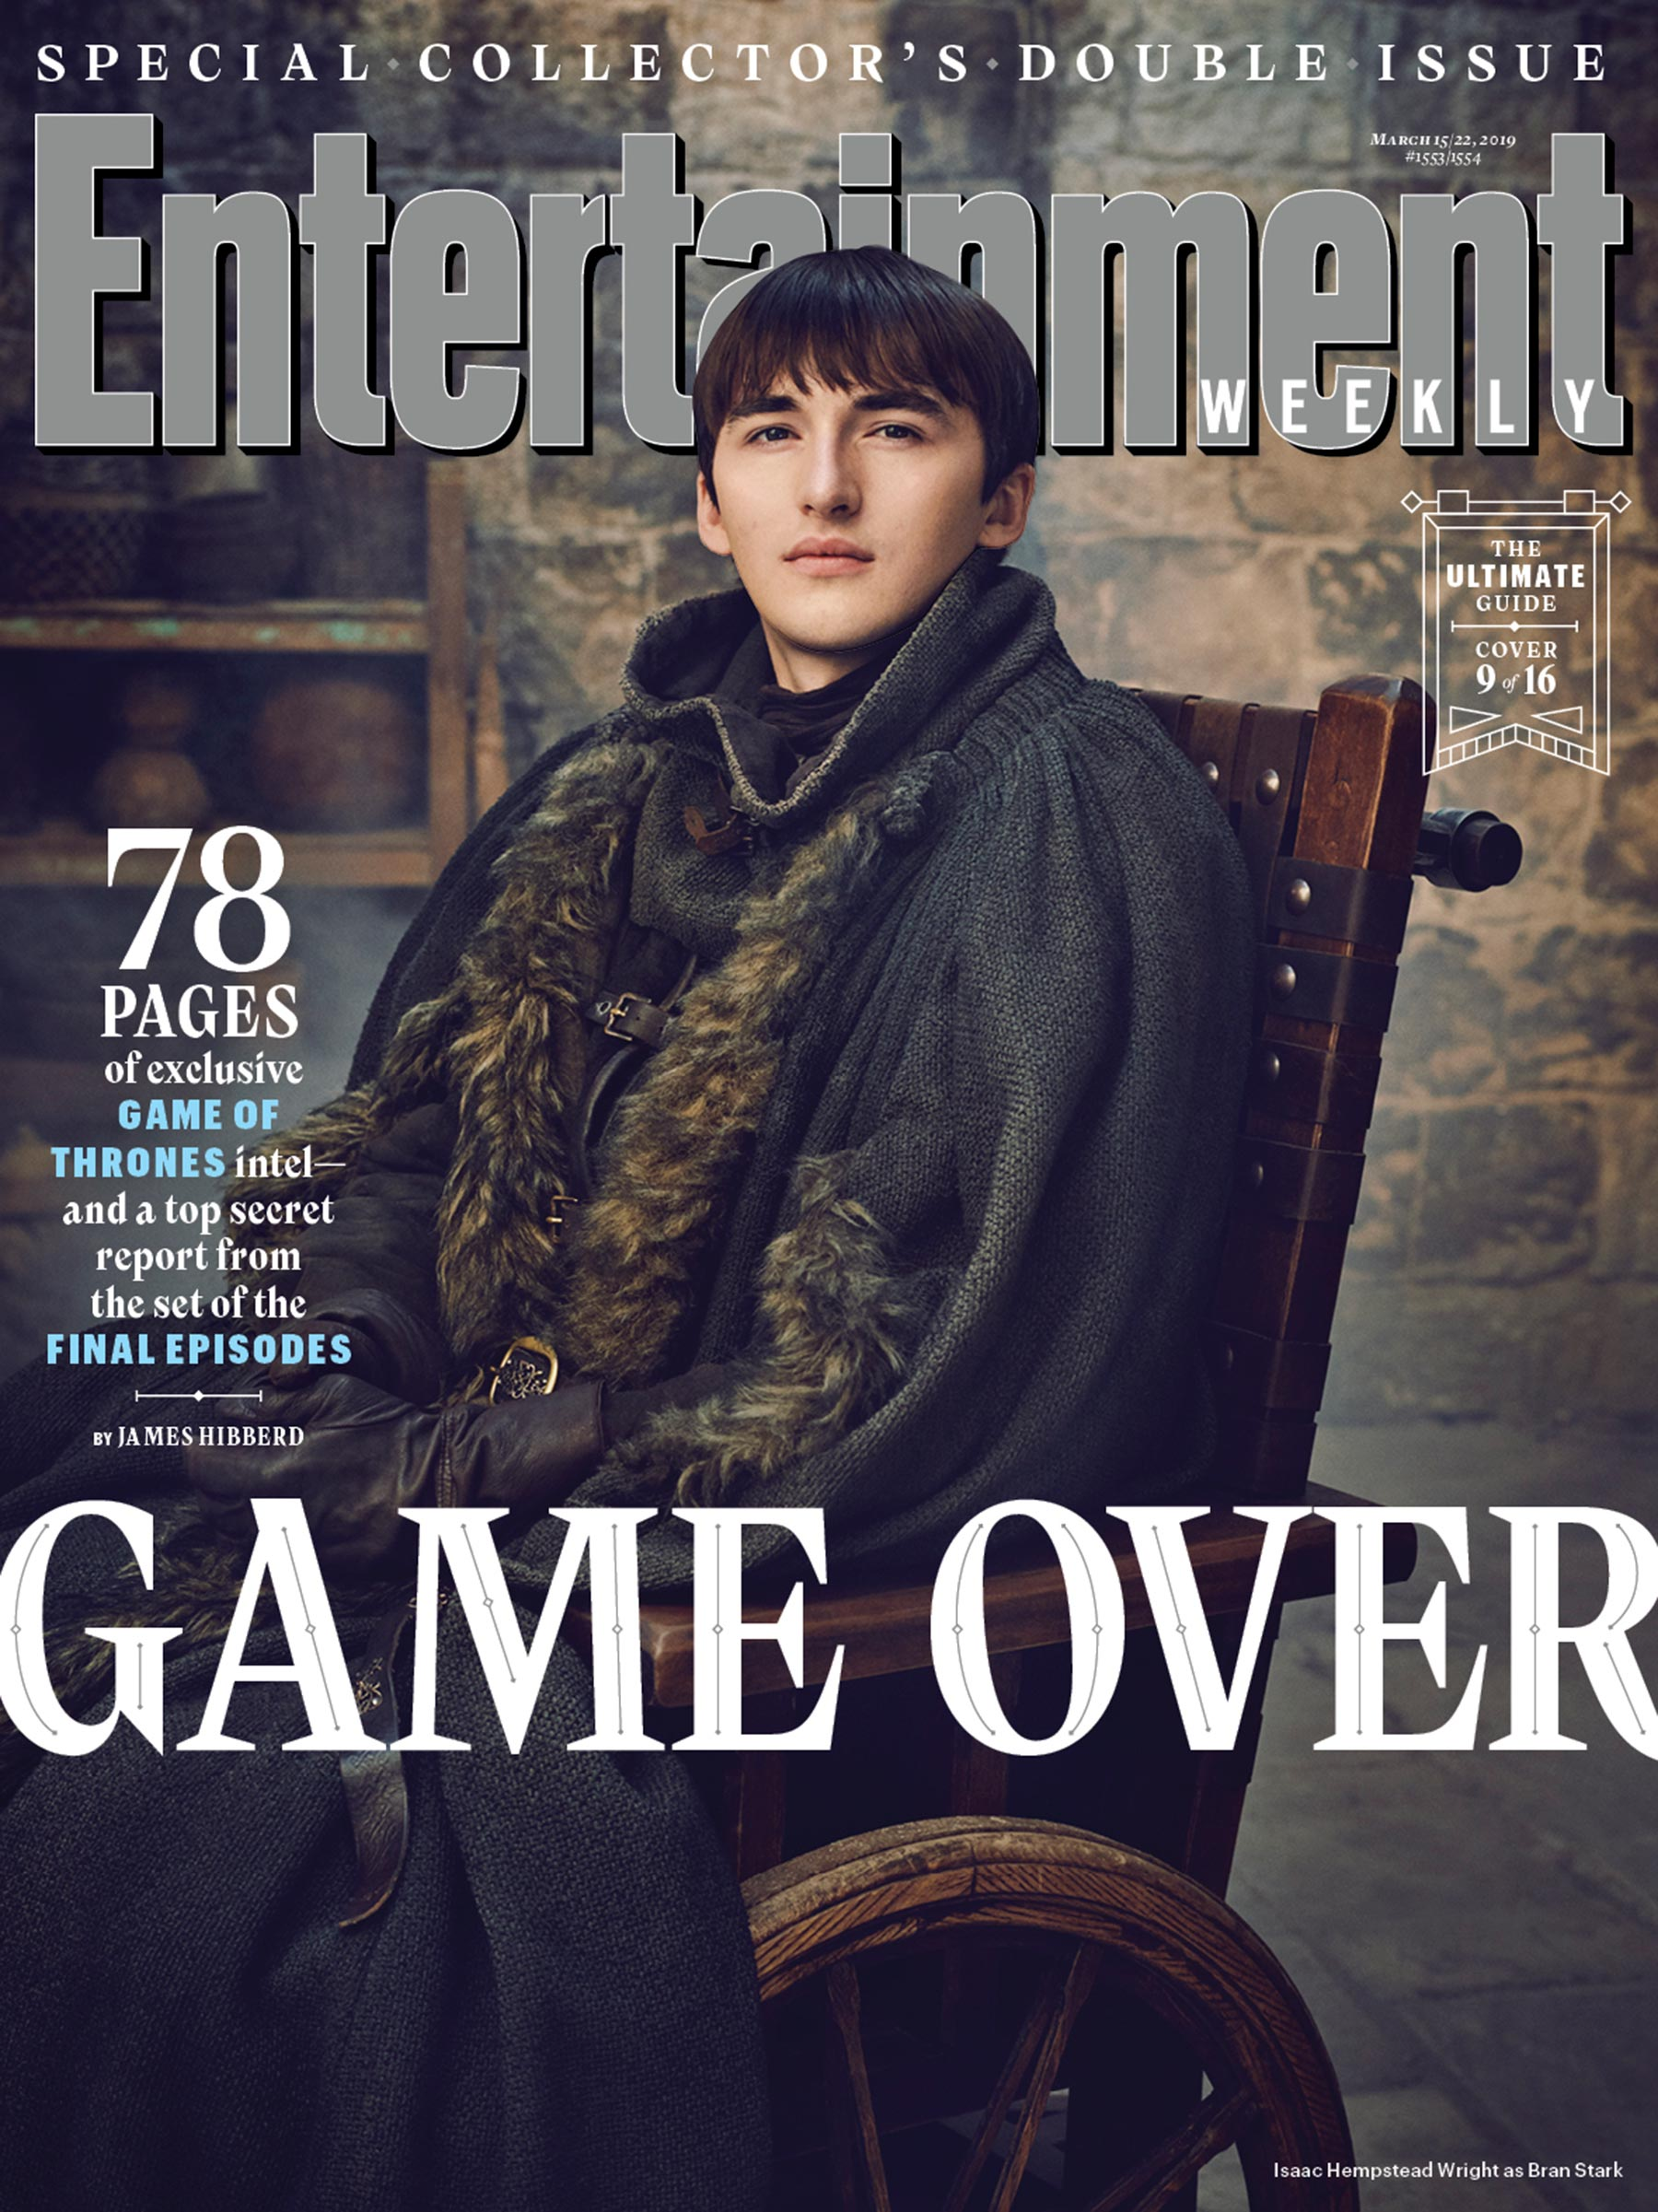 Entertainment Weekly Cover - March 2019 - Isaac Hempstead-Wright as Bran Stark